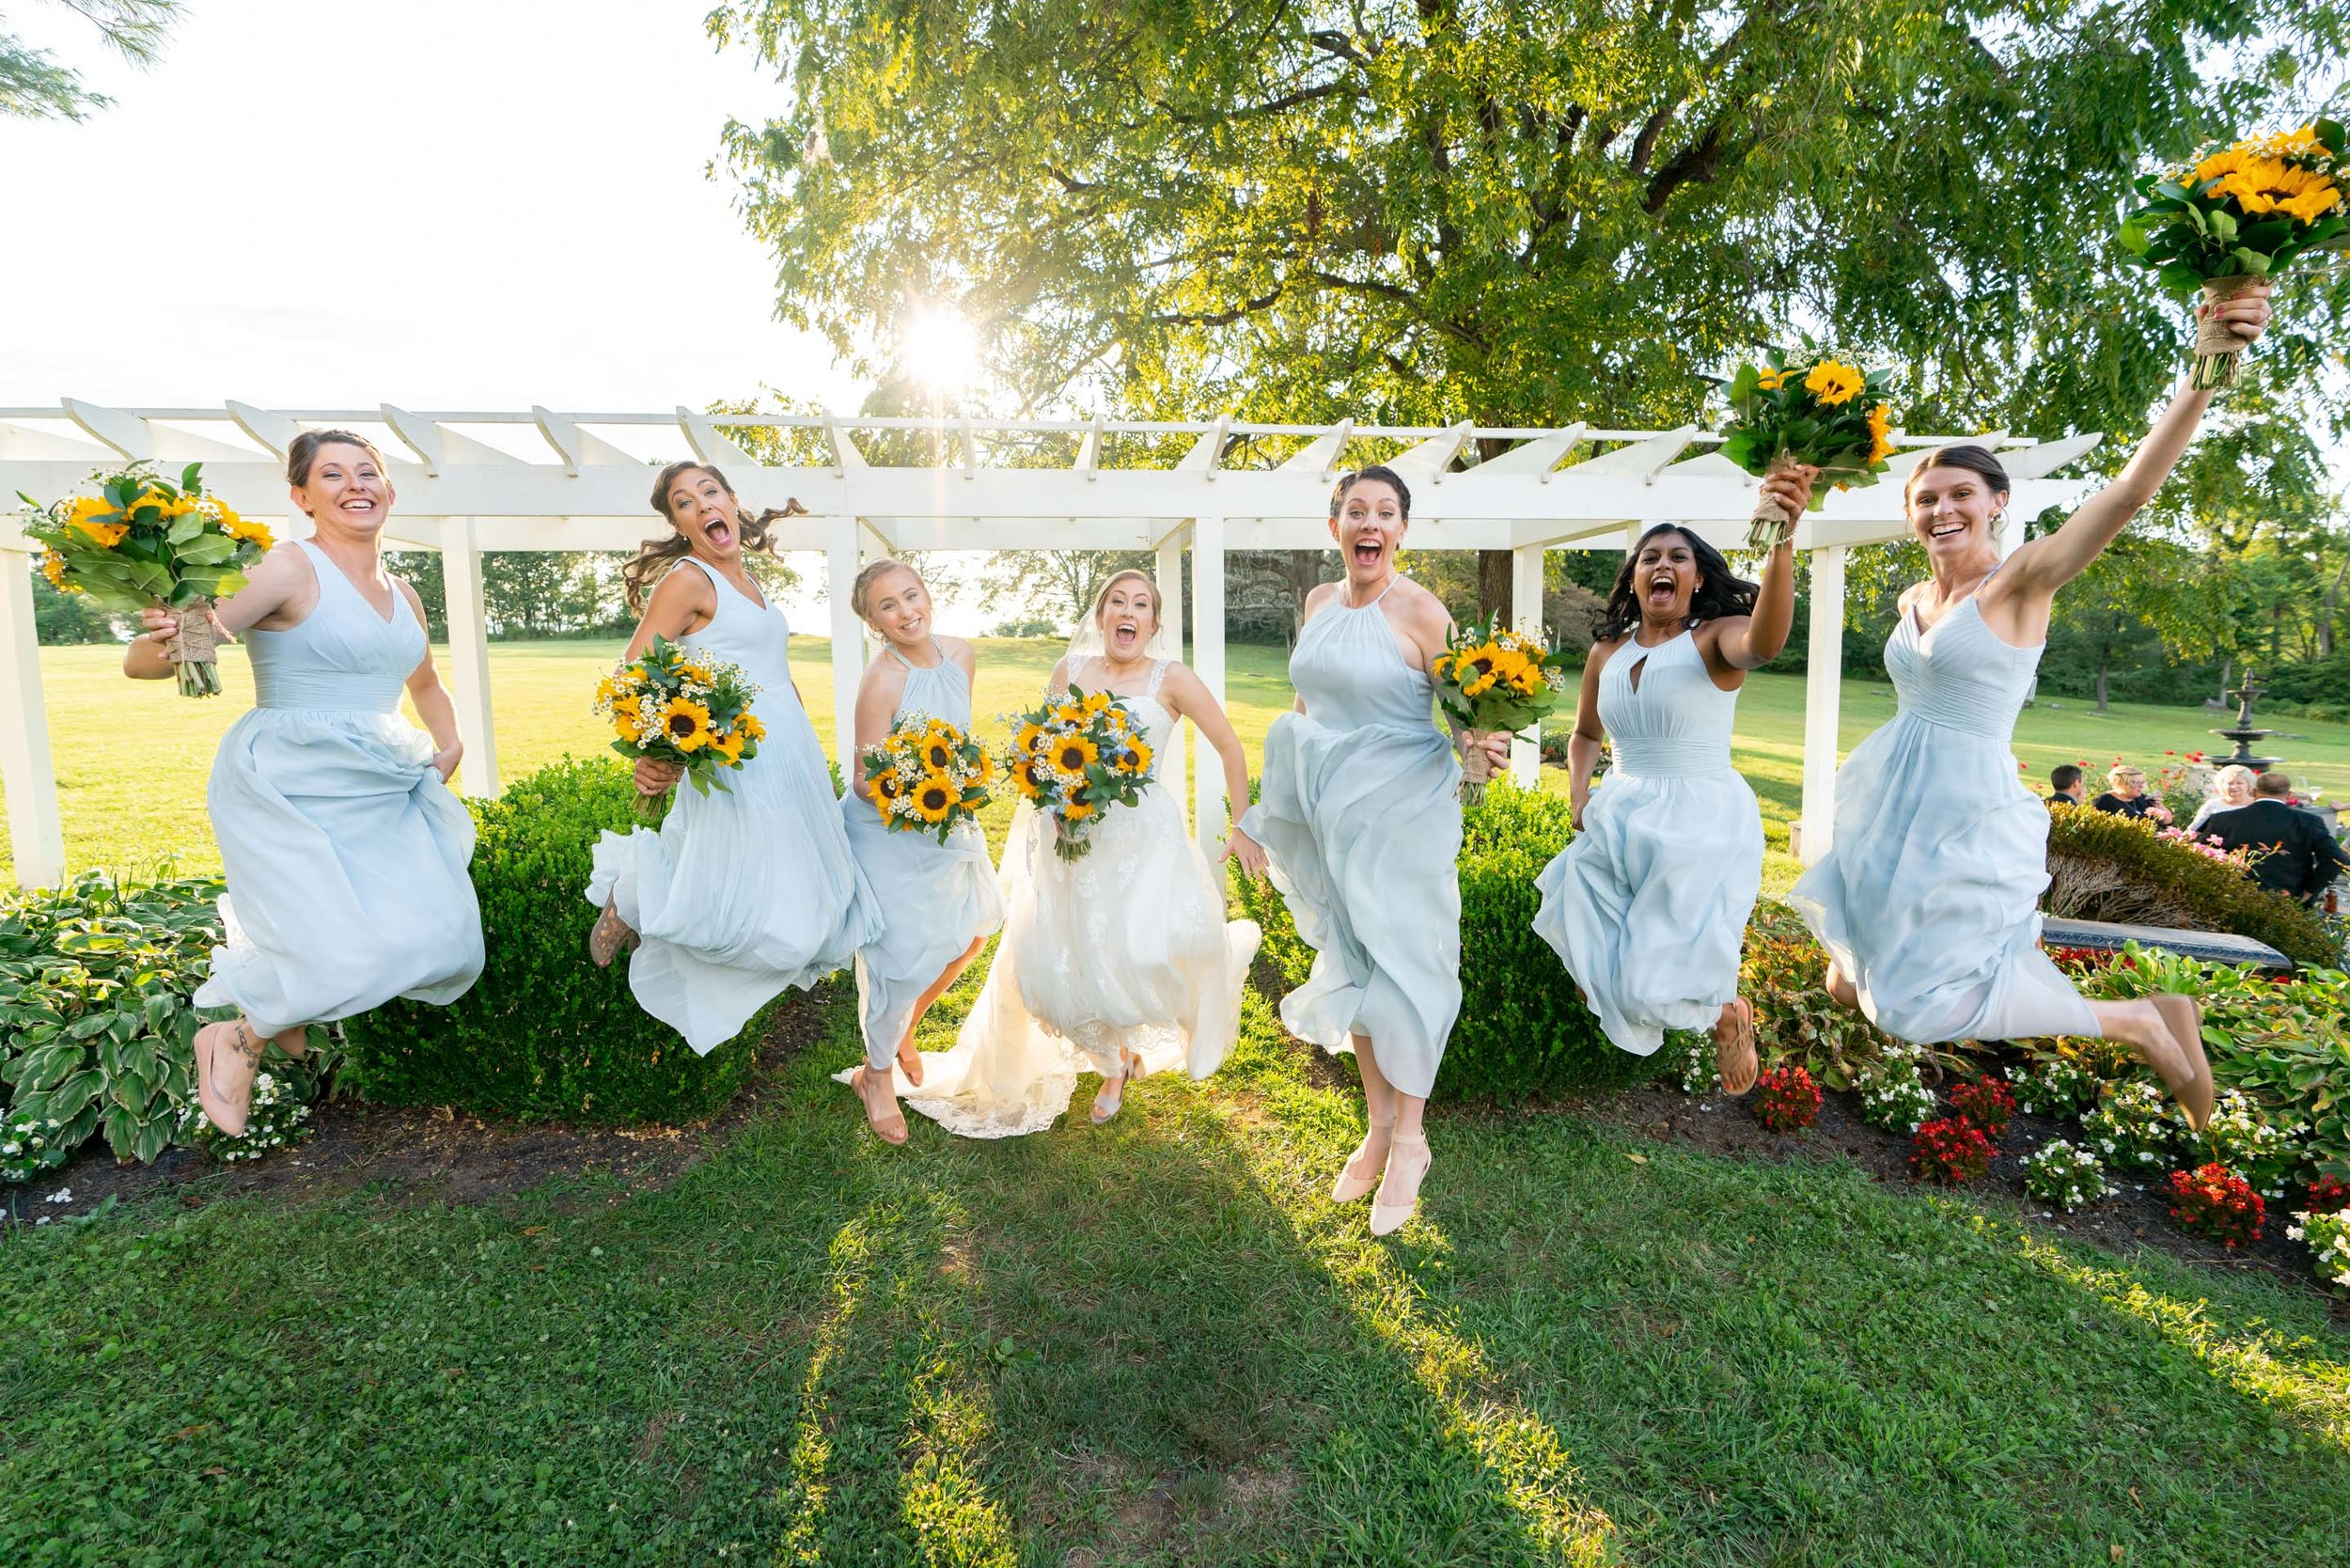 Bride and bridesmaids jumping in the air photo with blue azazie gowns